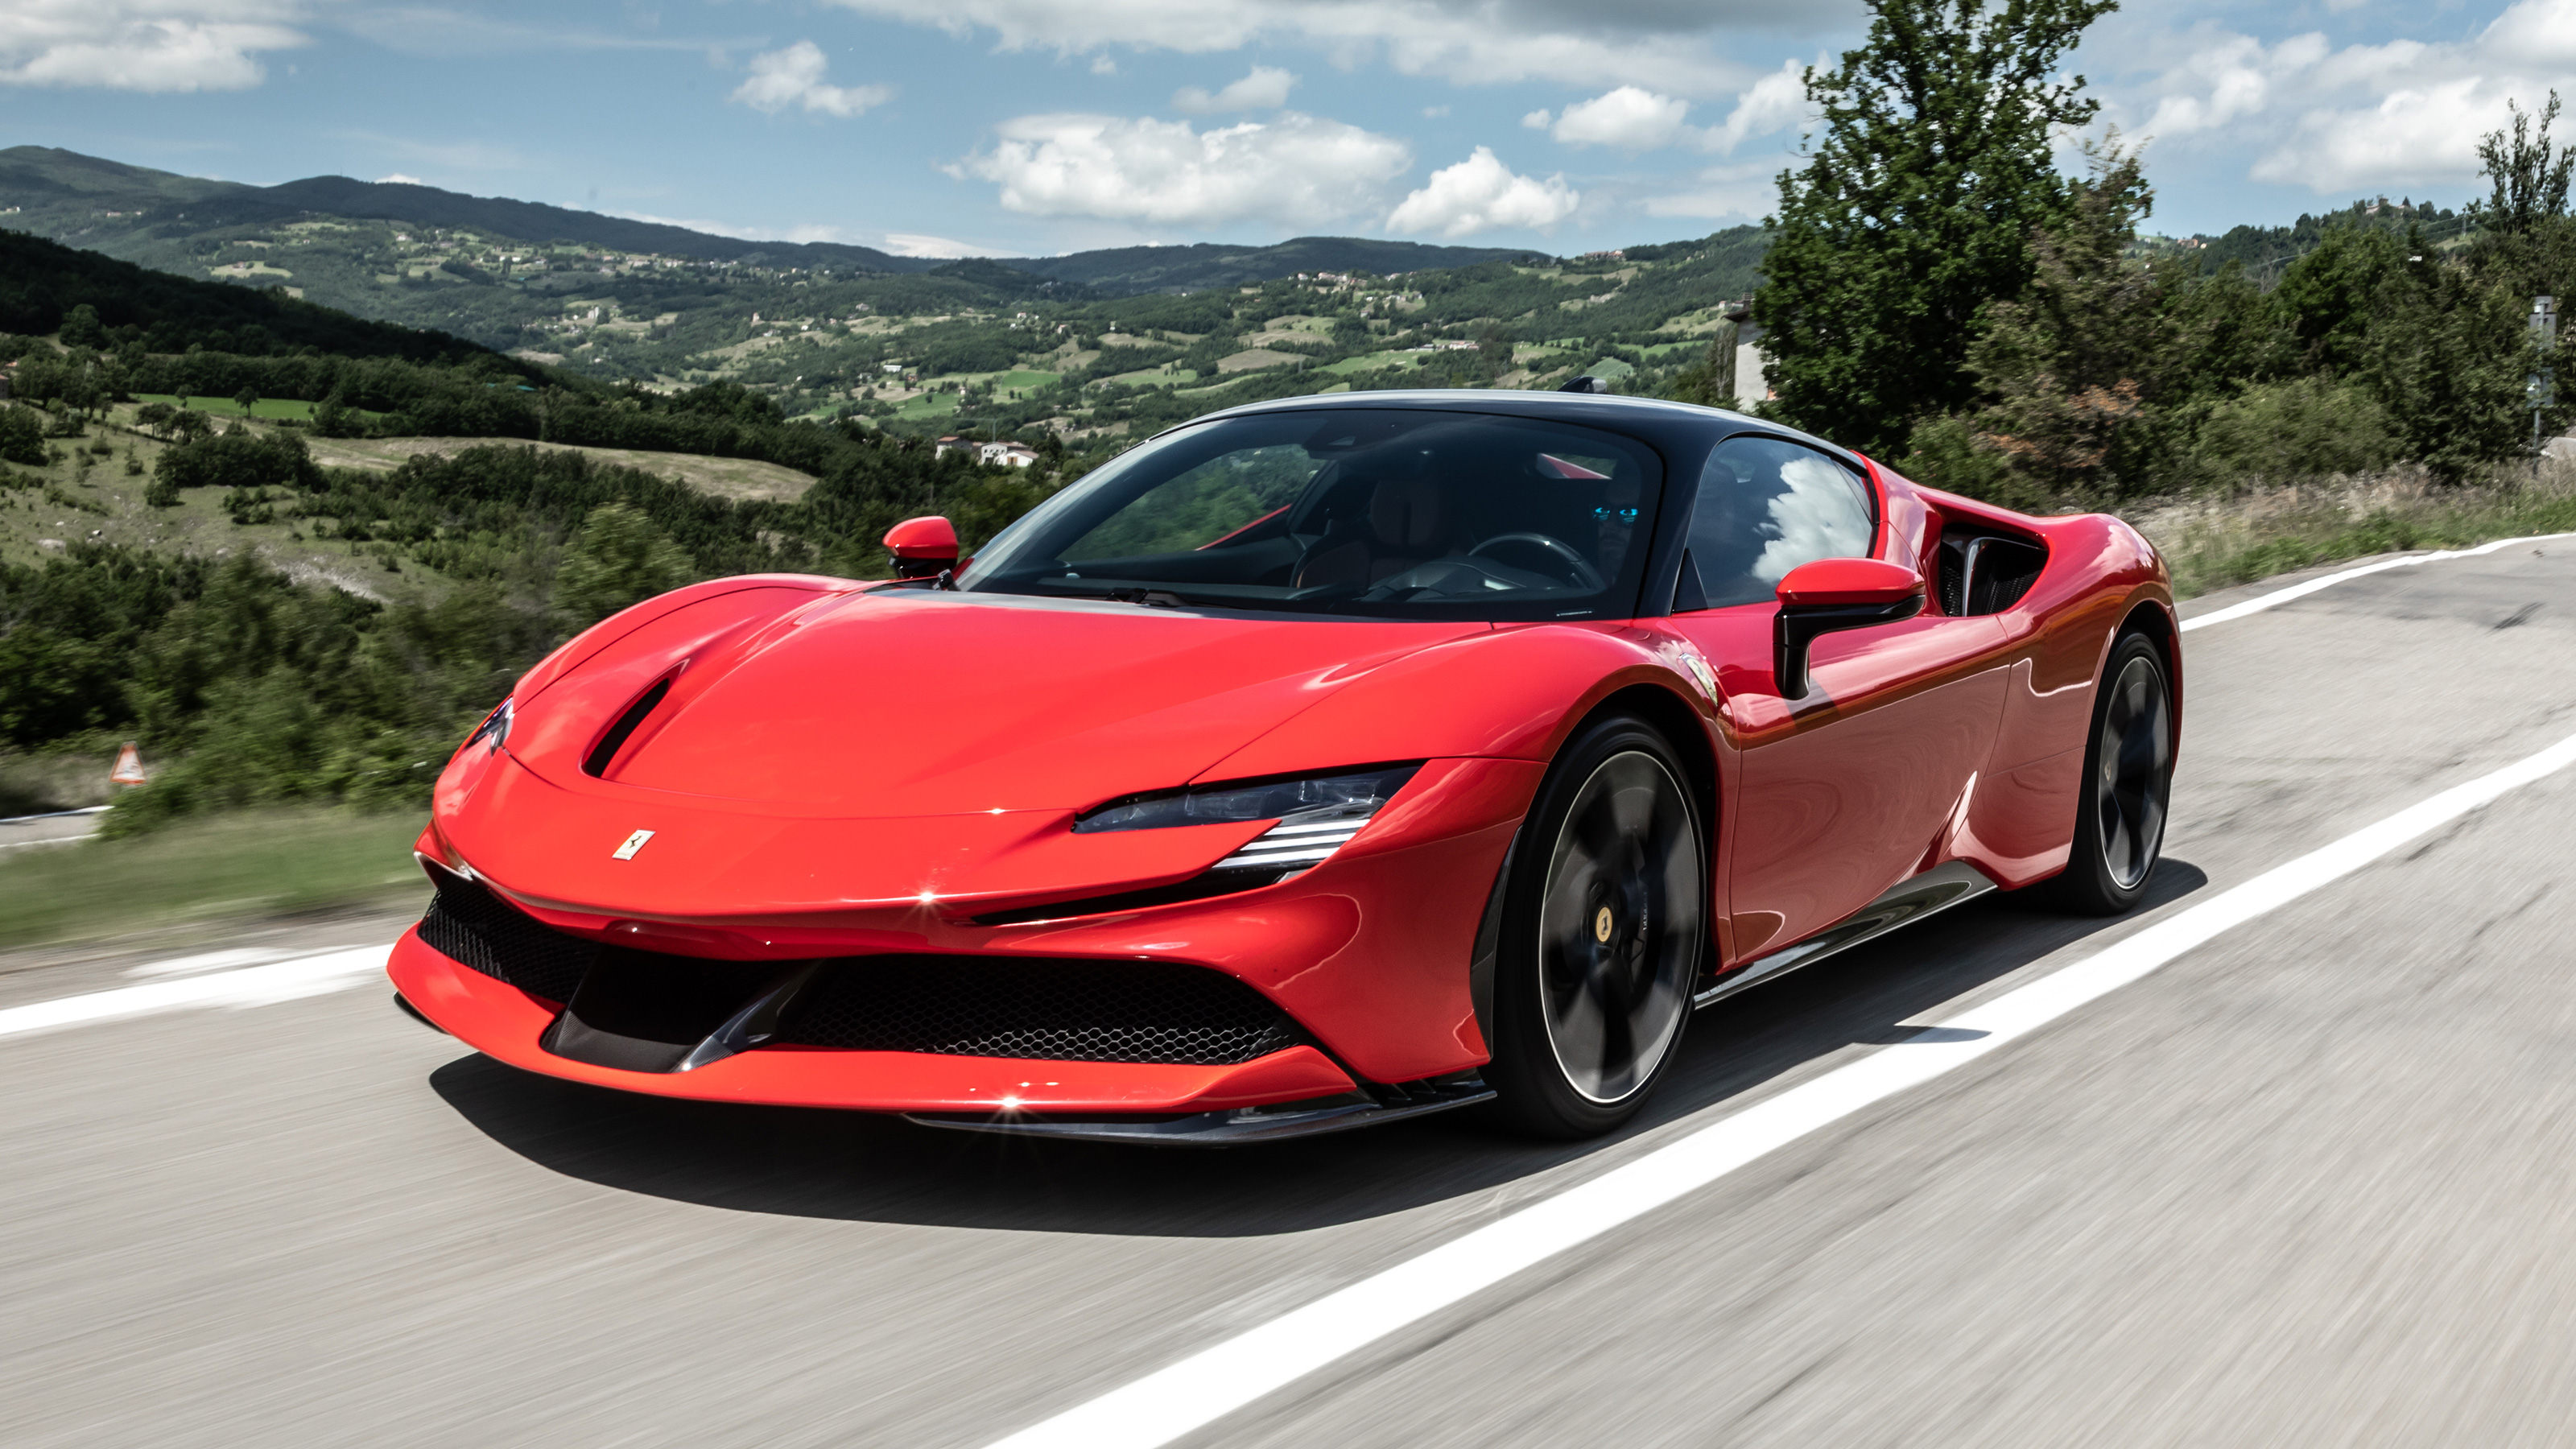 New Ferrari Sf90 Stradale 2020 Review Auto Express